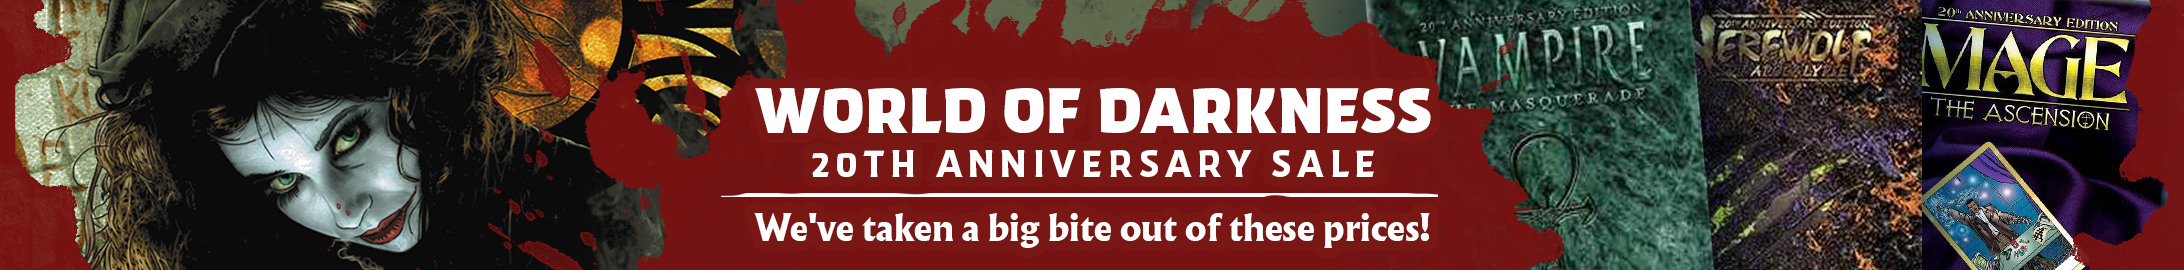 World of Darkness 20th Anniversary Edition Sale!